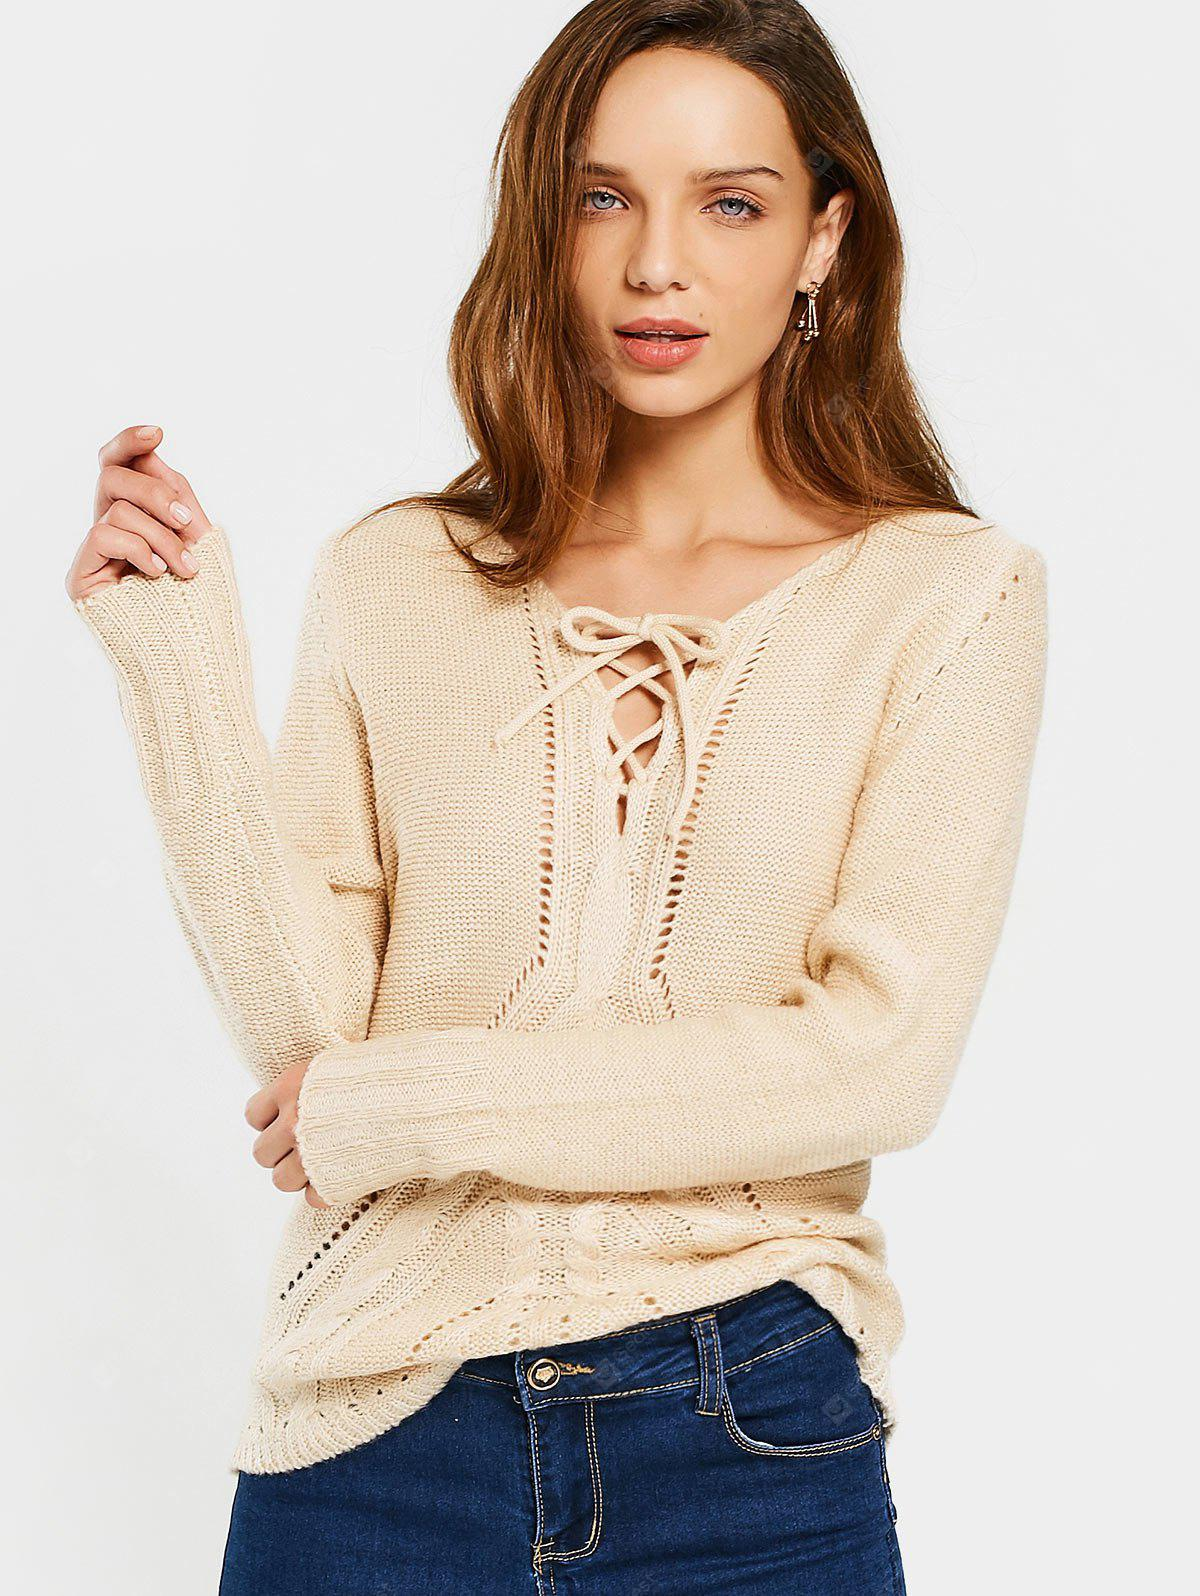 Lace Up Sheer V Neck Sweater